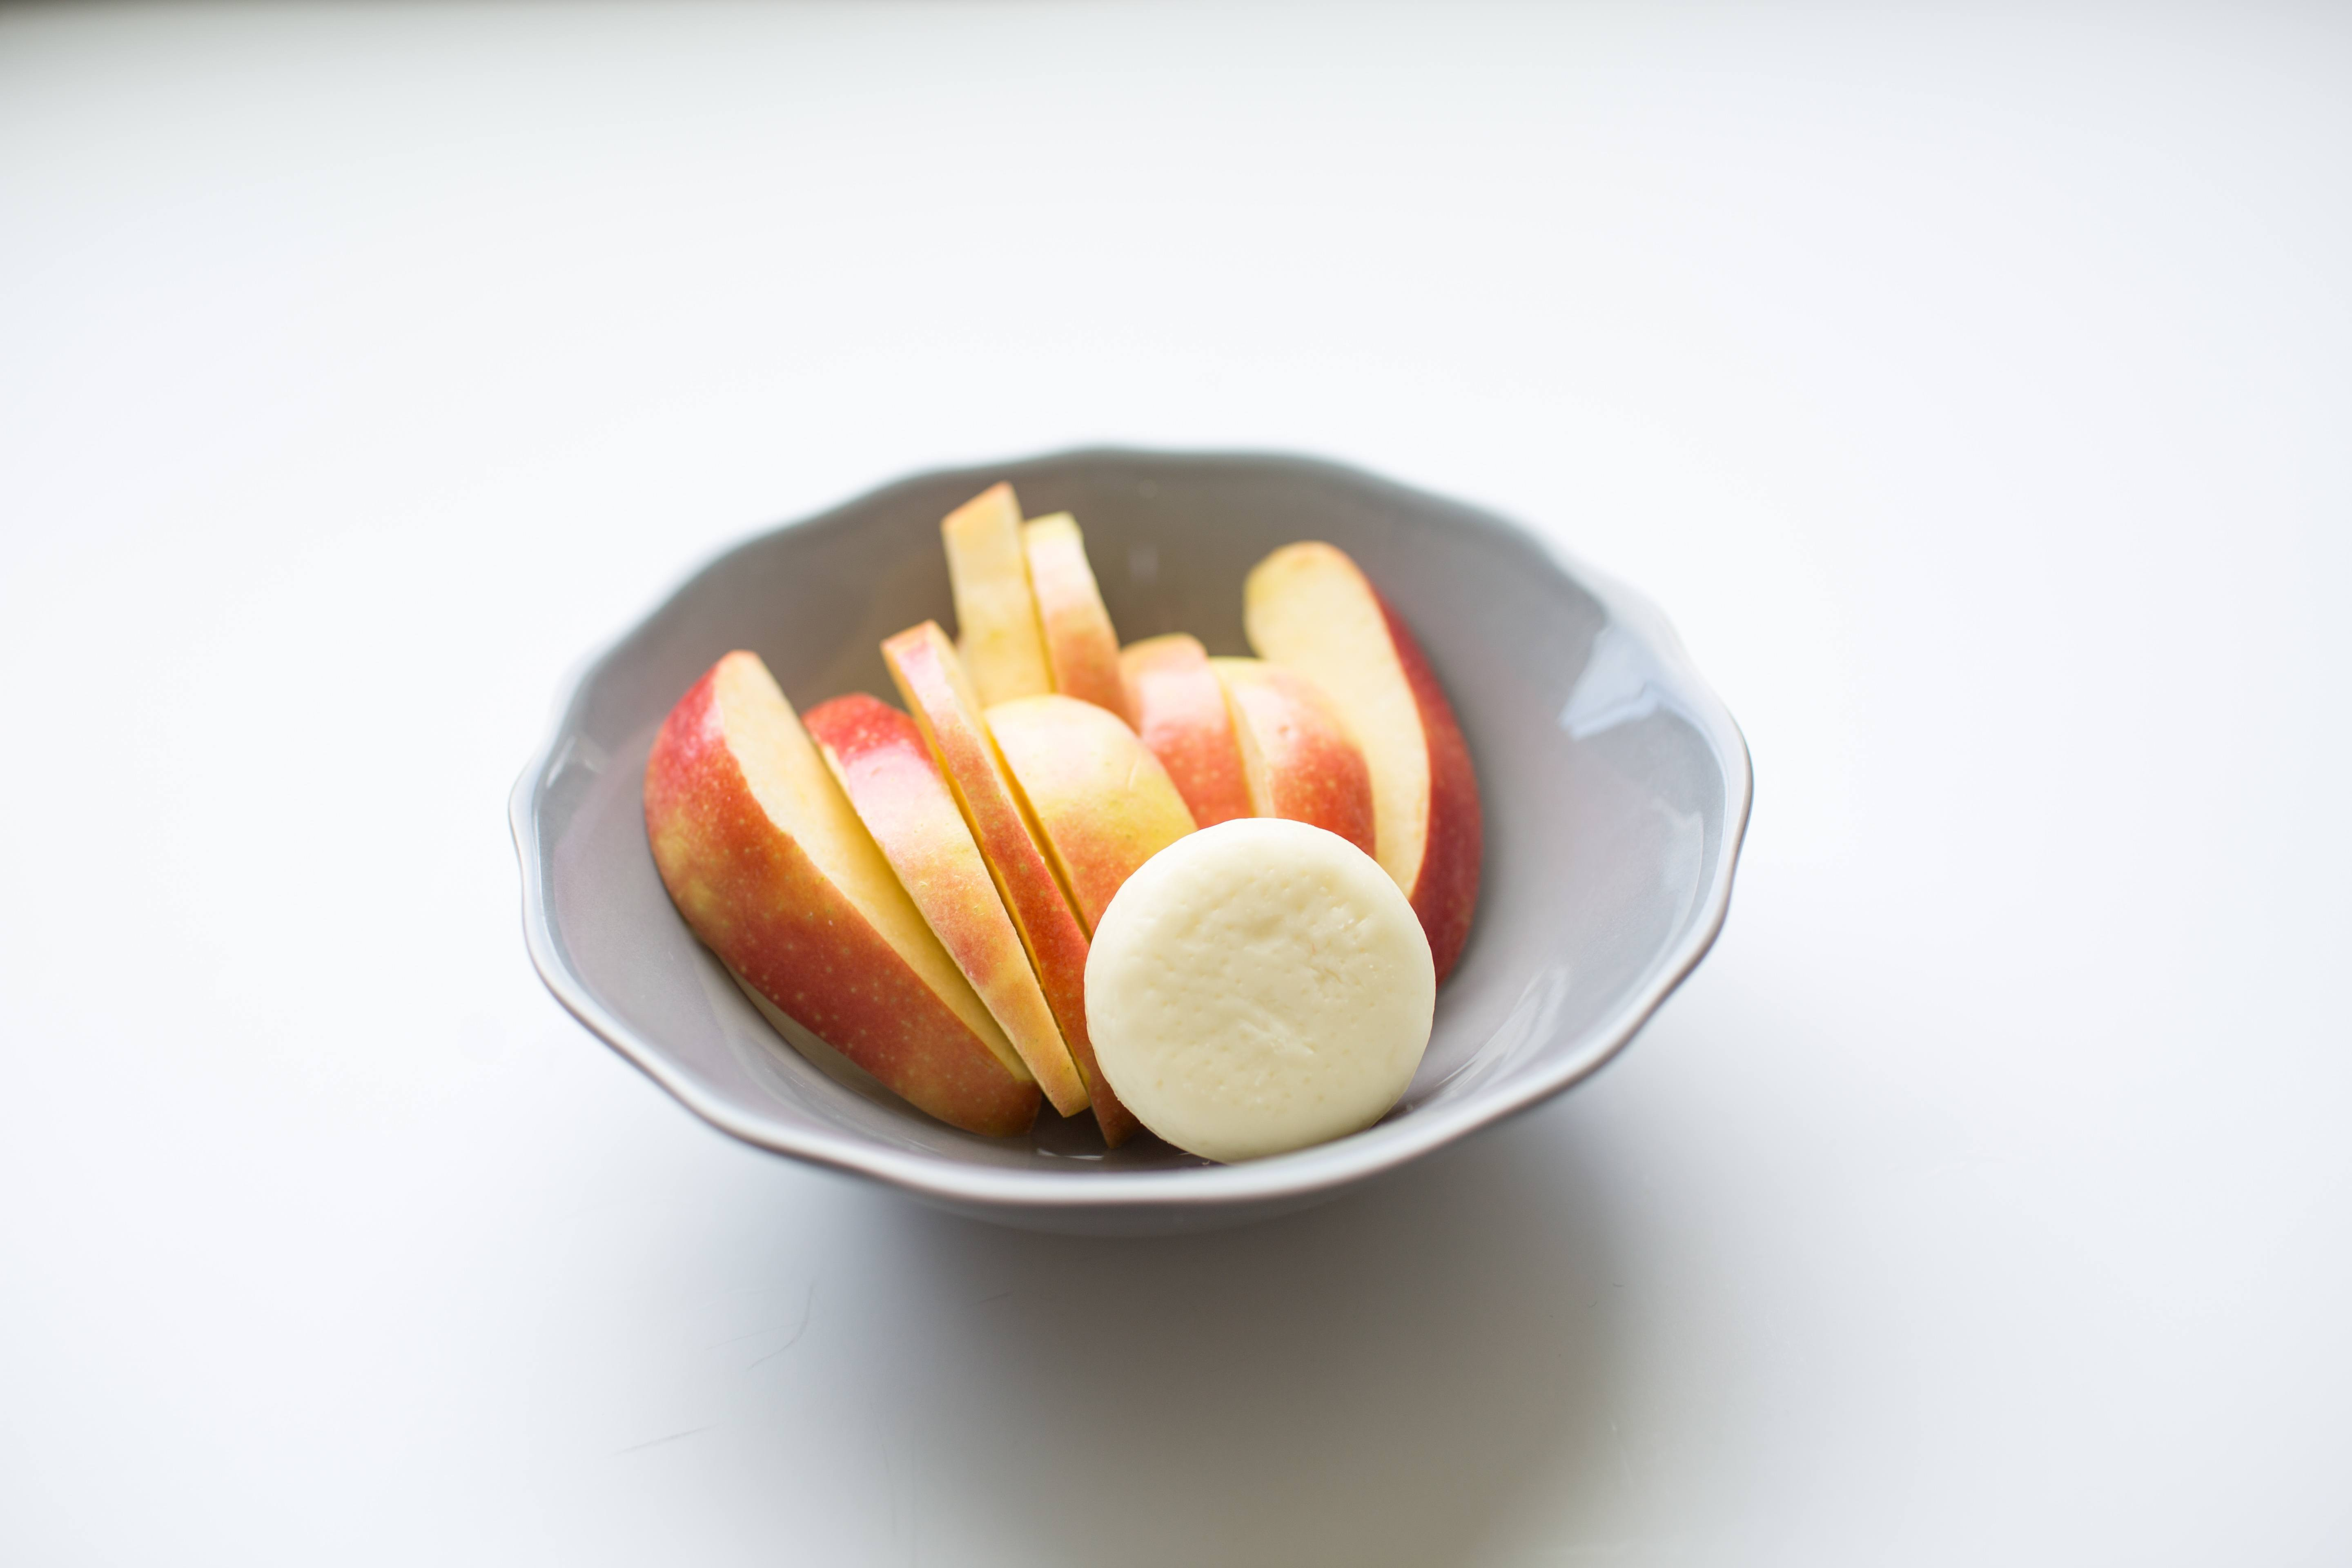 100 calorie snack apple slices and Babybel cheese